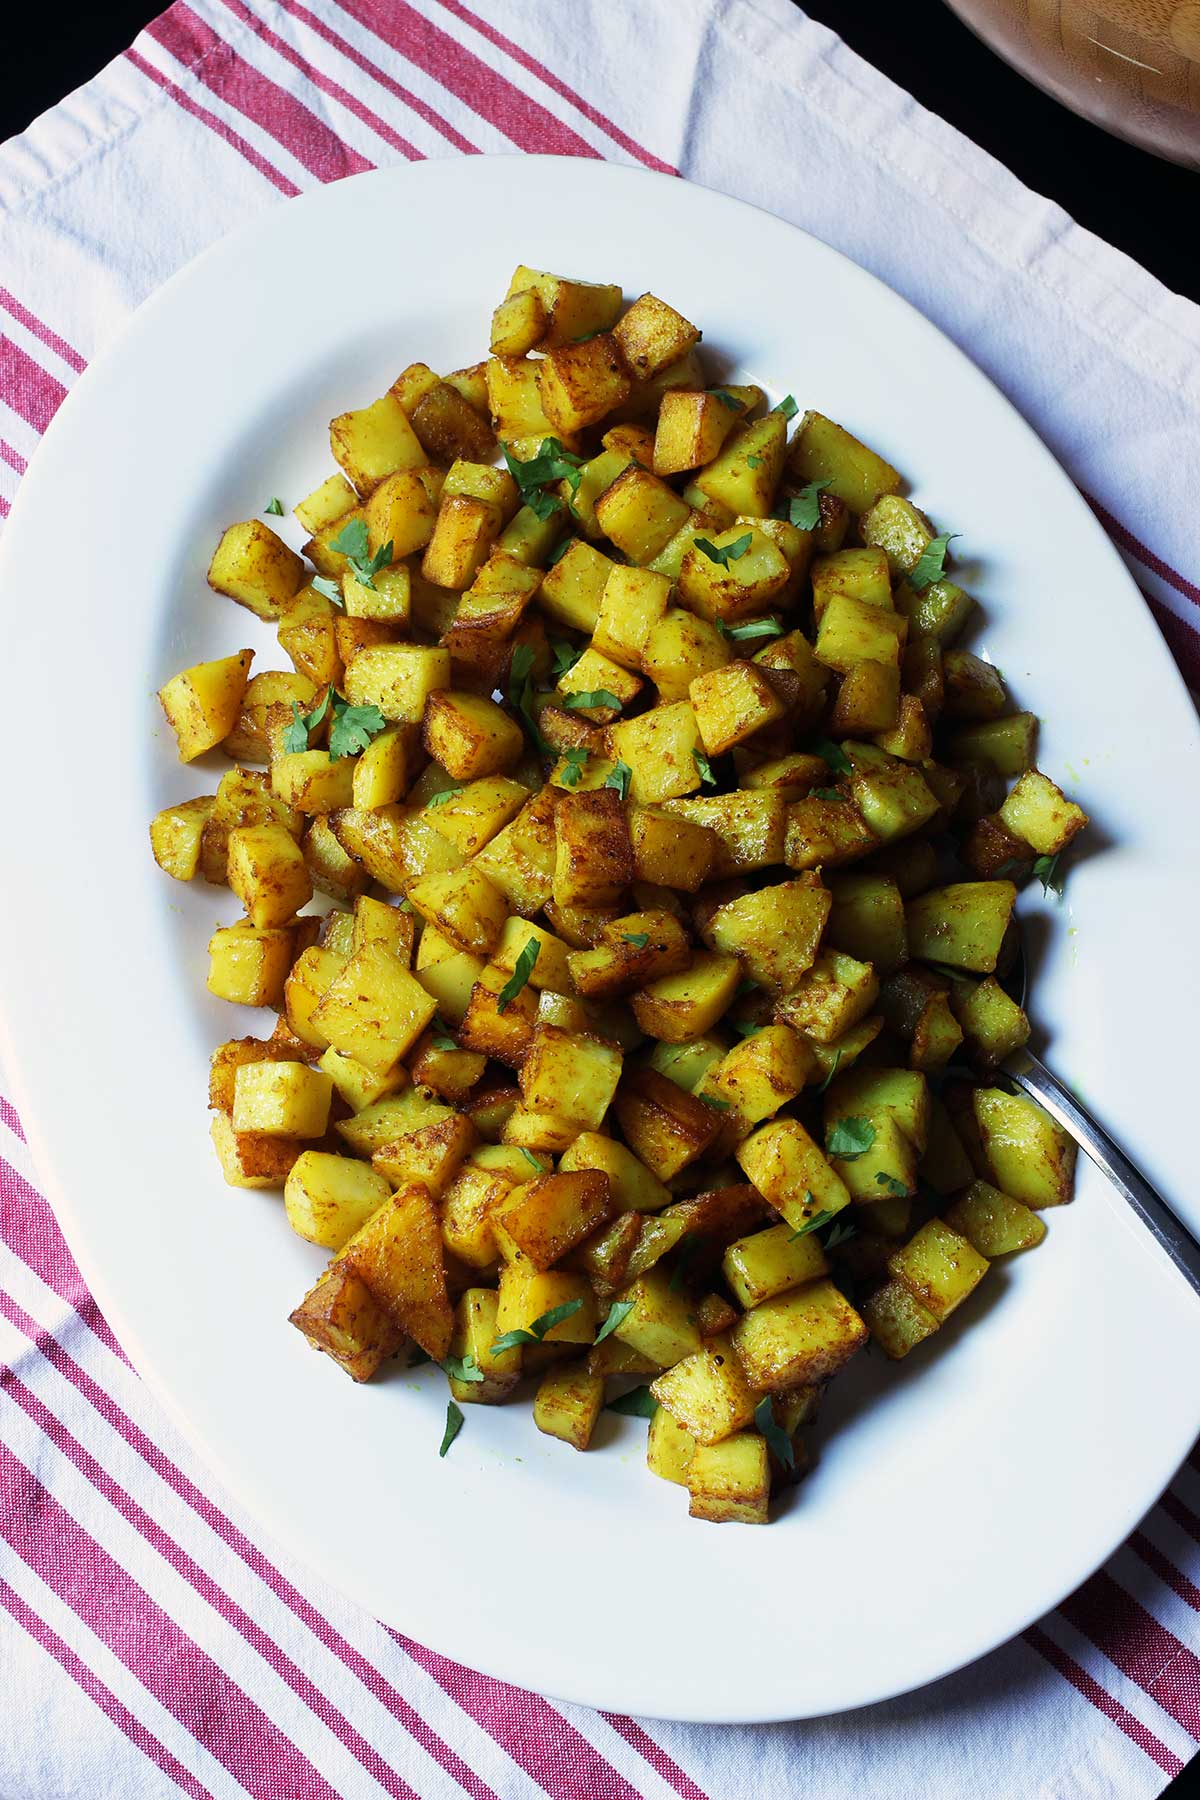 large oval platter of curried potatoes